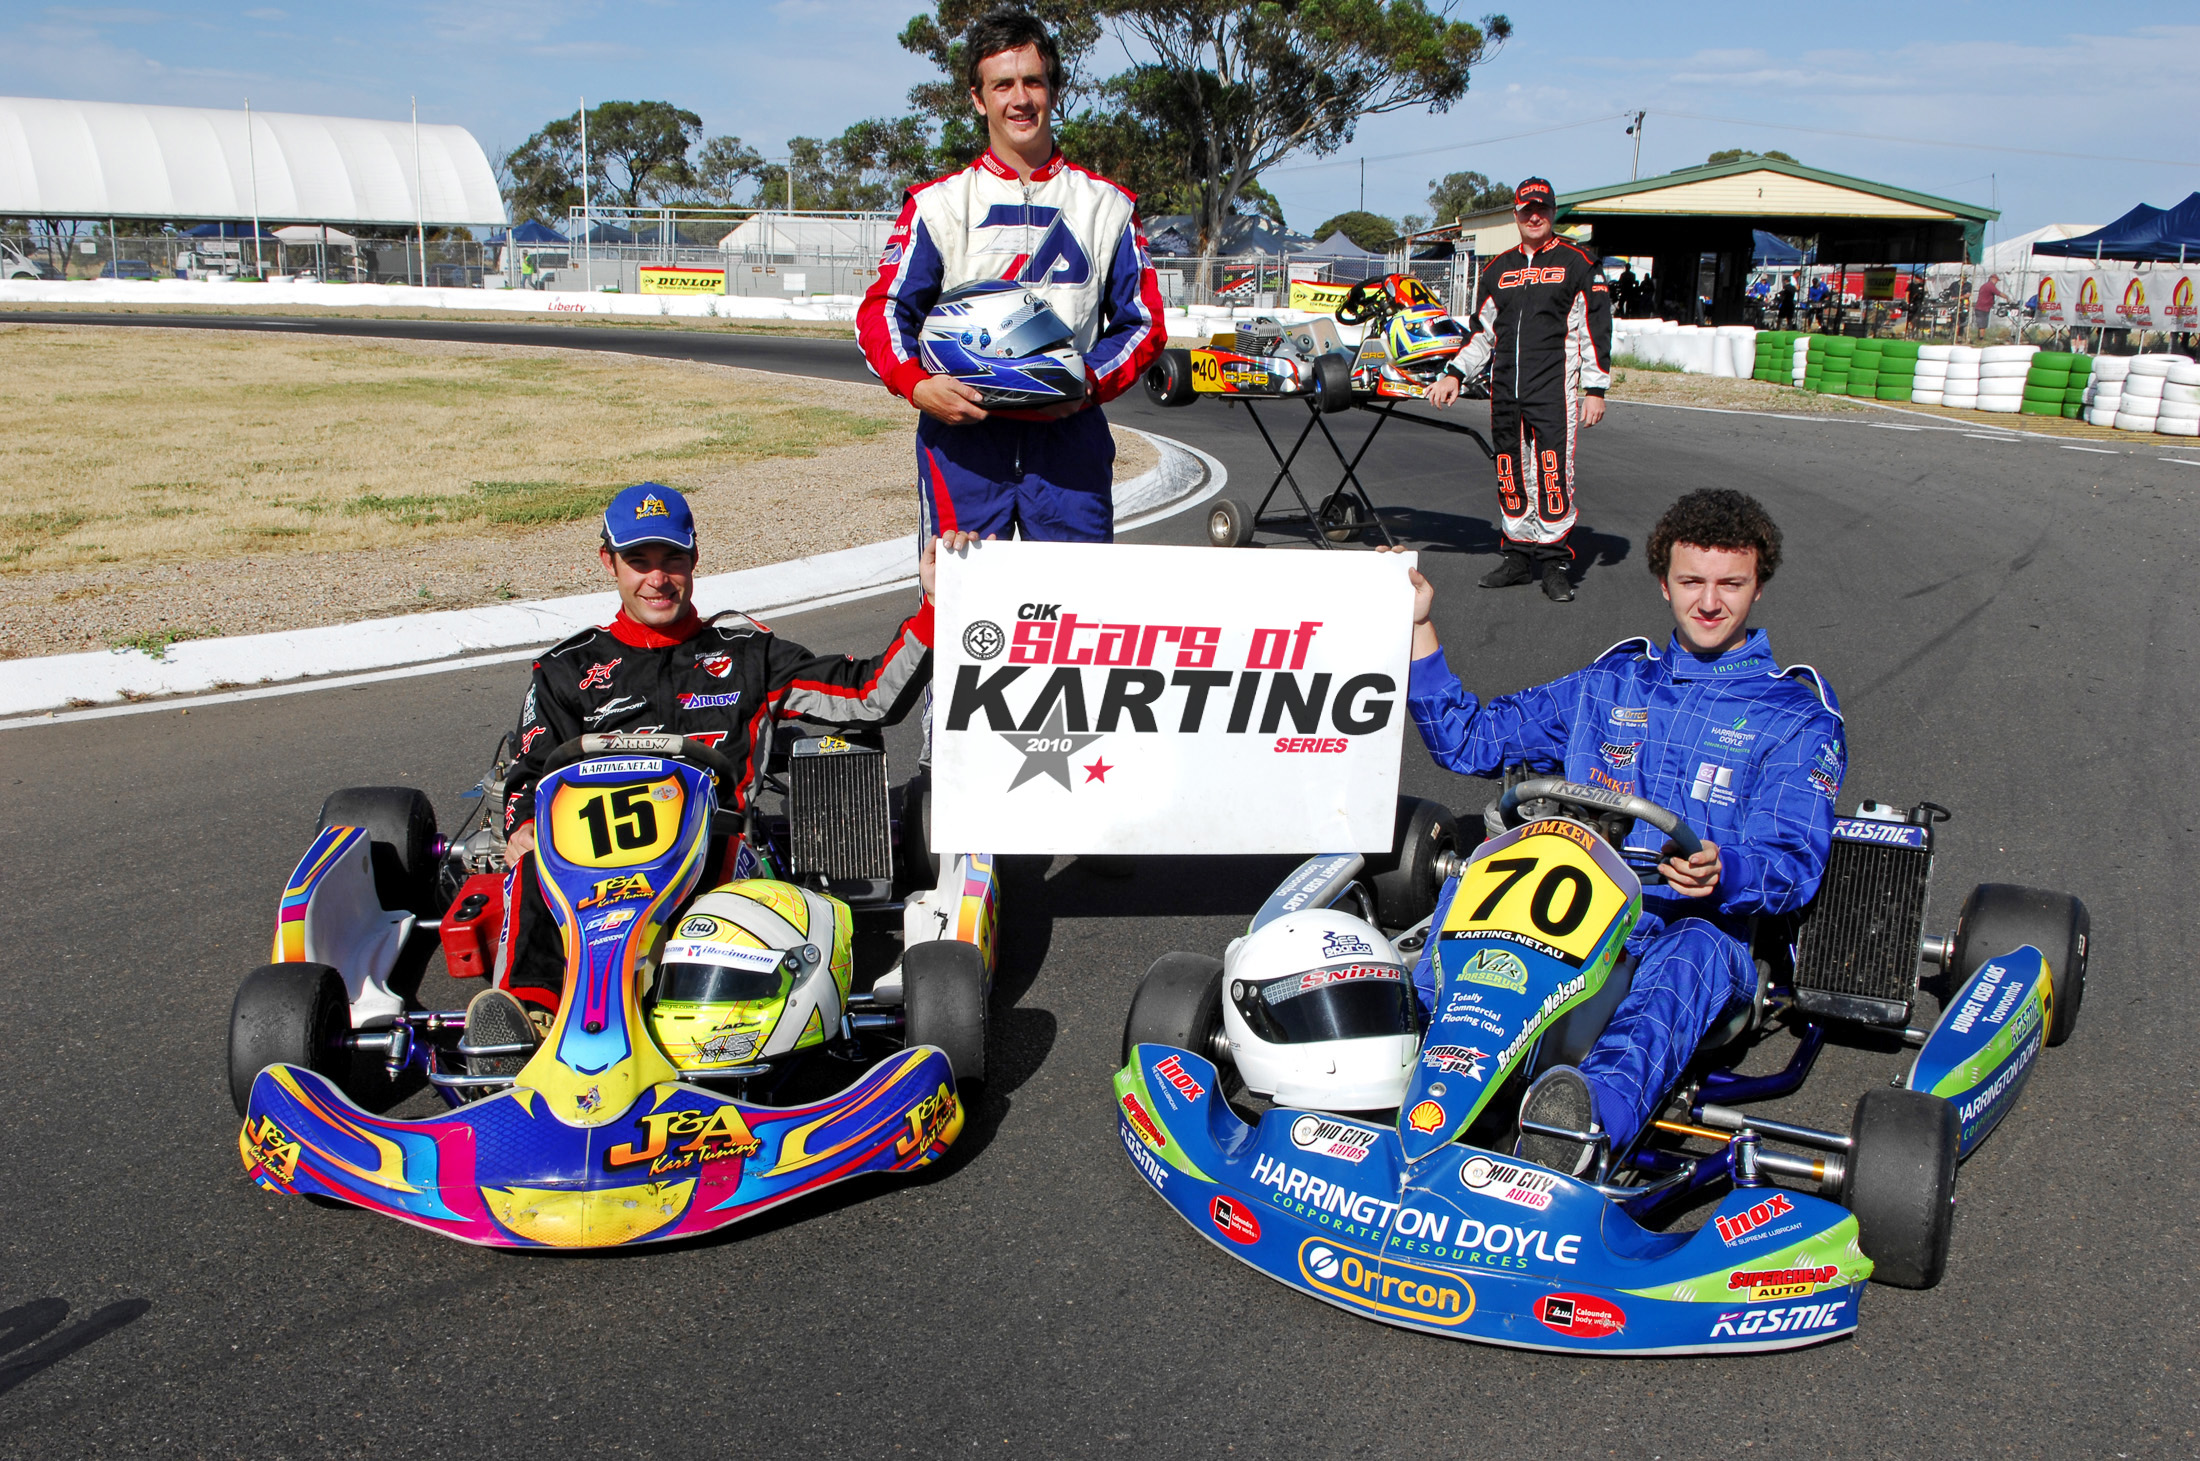 Stars of Karting set to shine in 2010